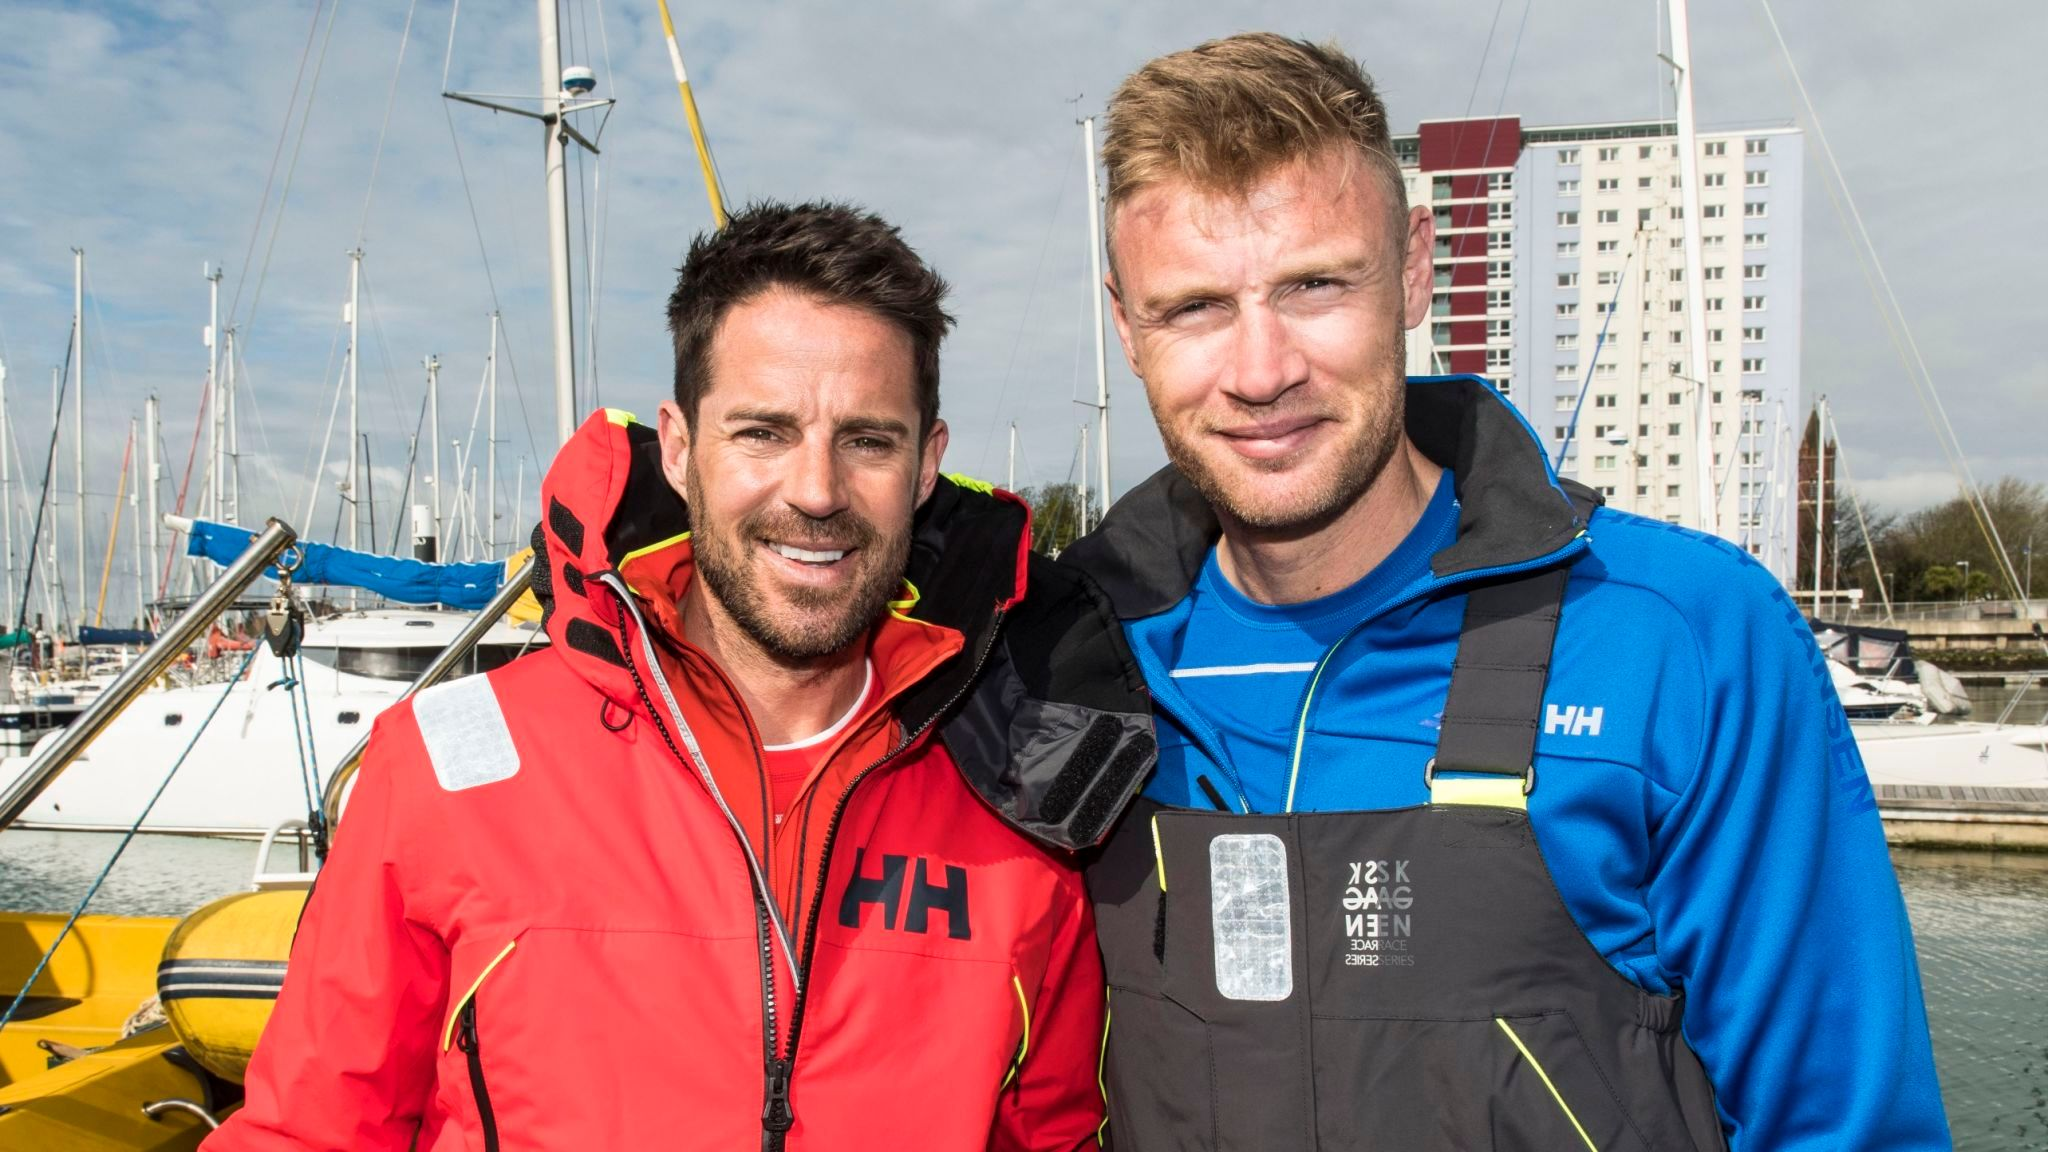 Jamie Redknapp and Freddie Flintoff set off on the A League Of Their Own European Road Trip: Pic: ©Sky UK Ltd